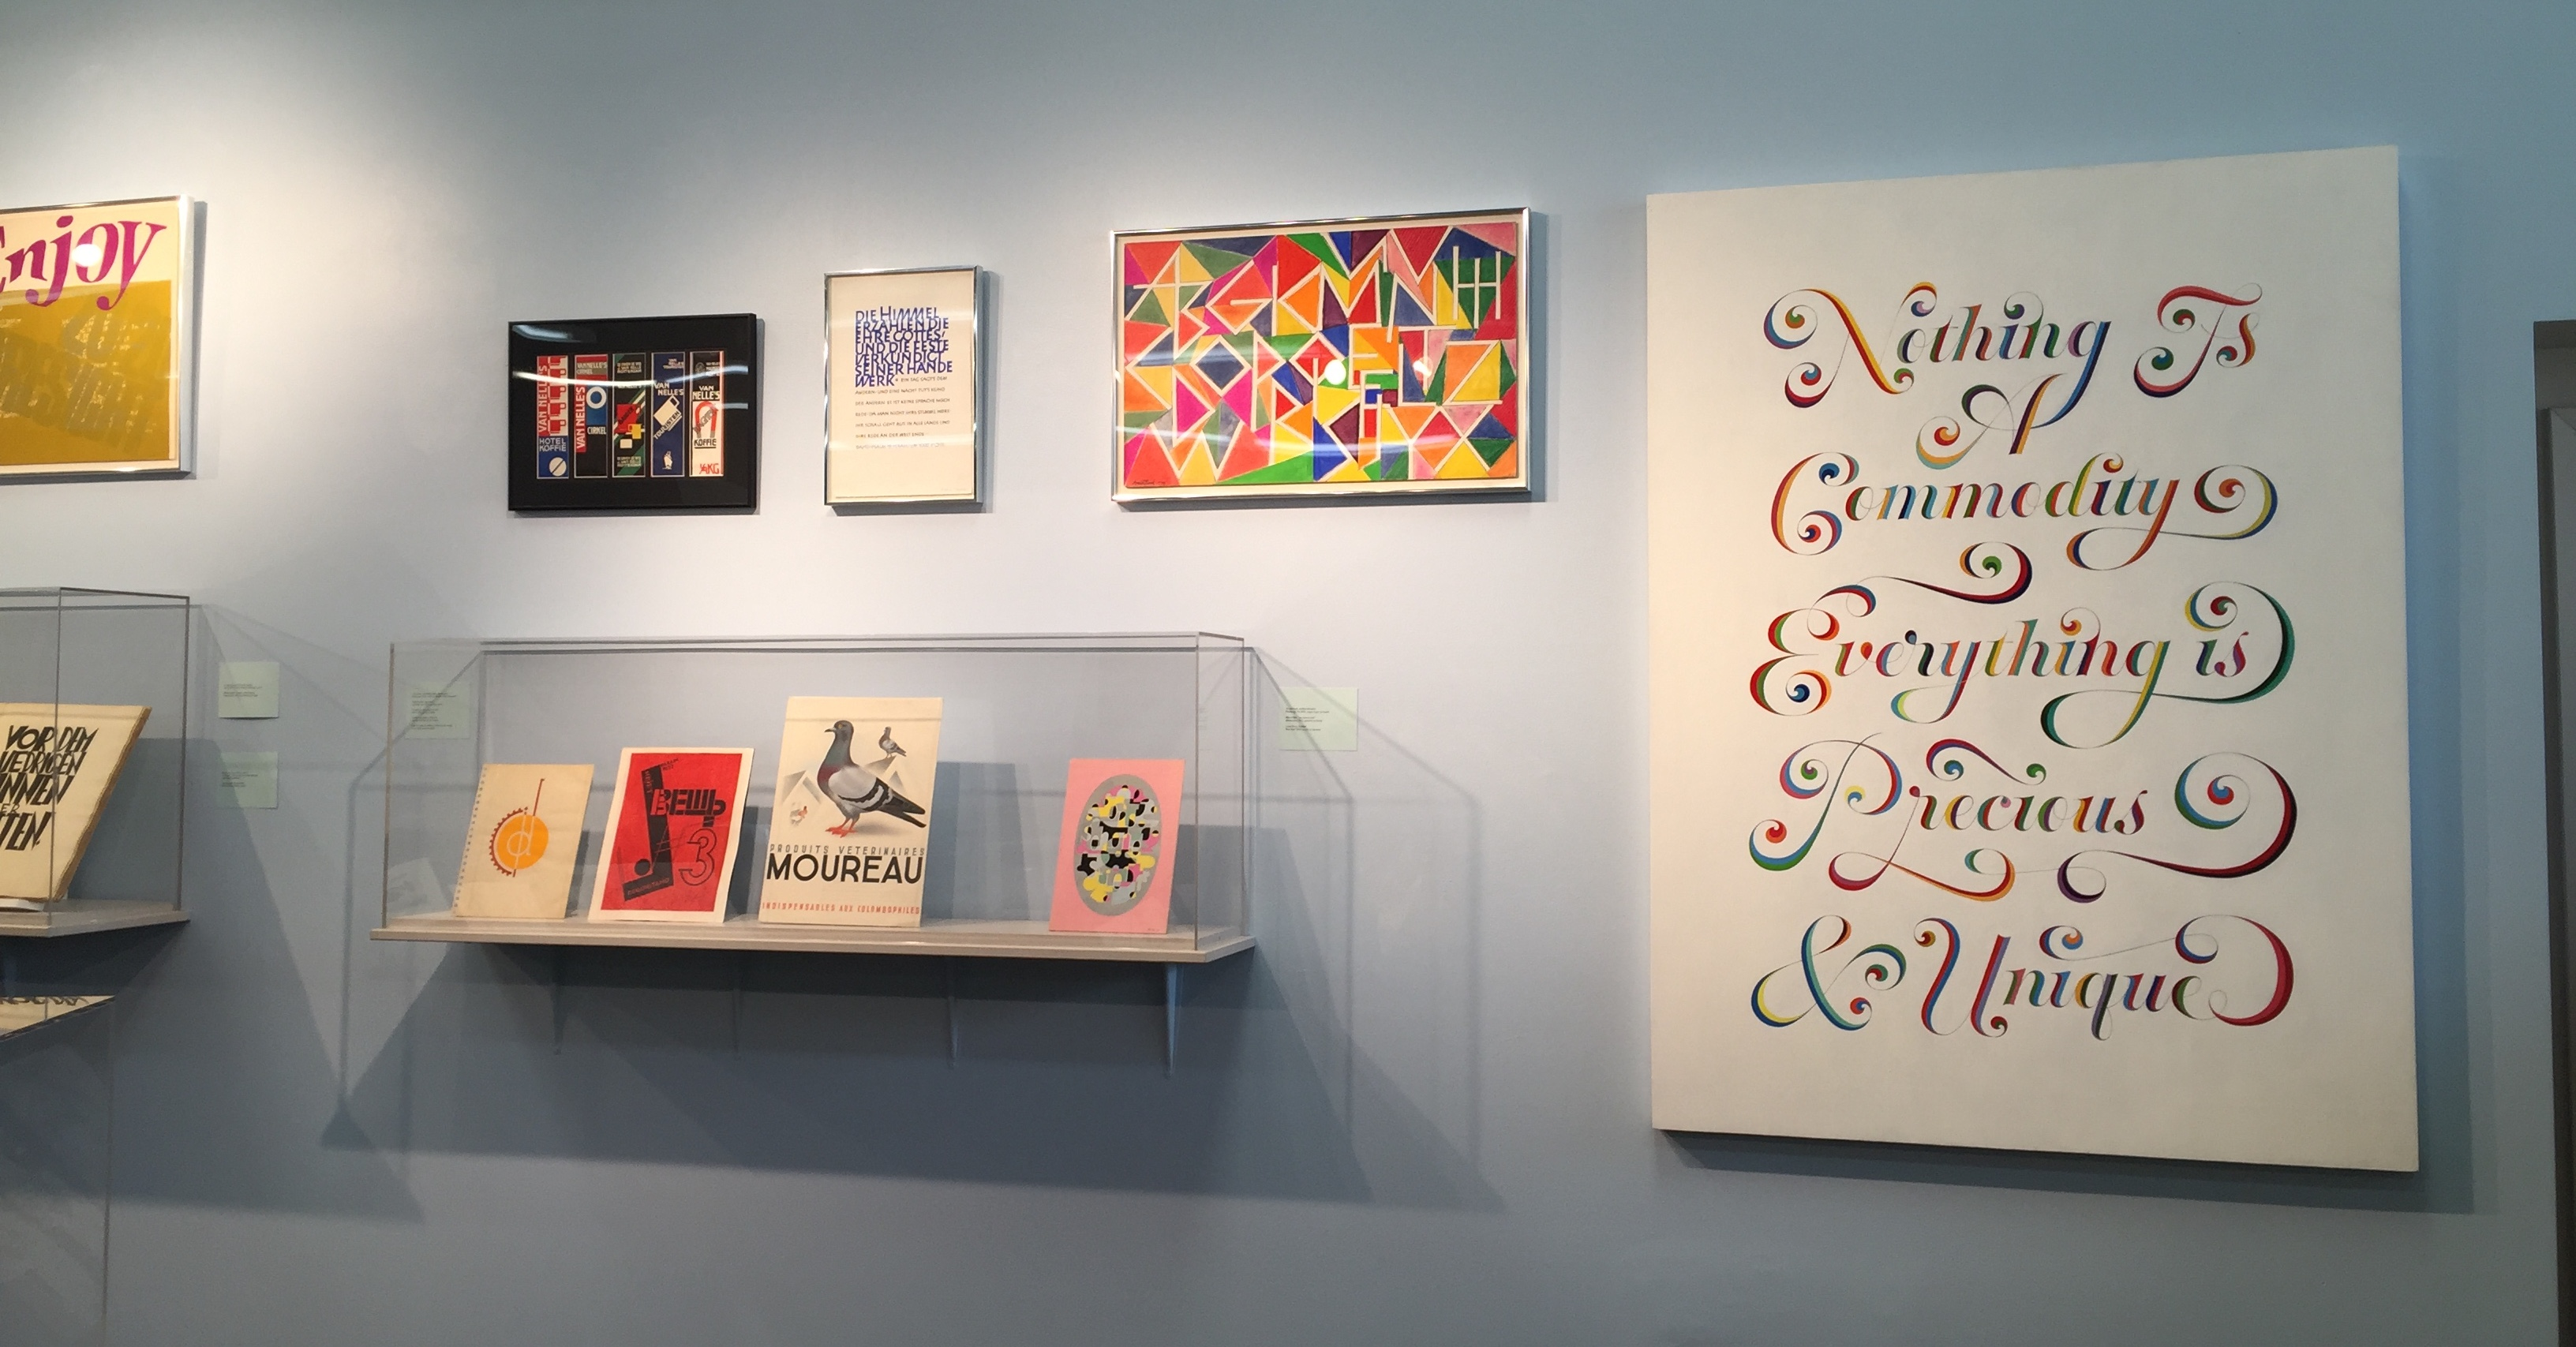 The Exhibition Organized By Letterform Archive In San Francisco Brings Together Handmade Letter Art From 15th Century To Today Without Type